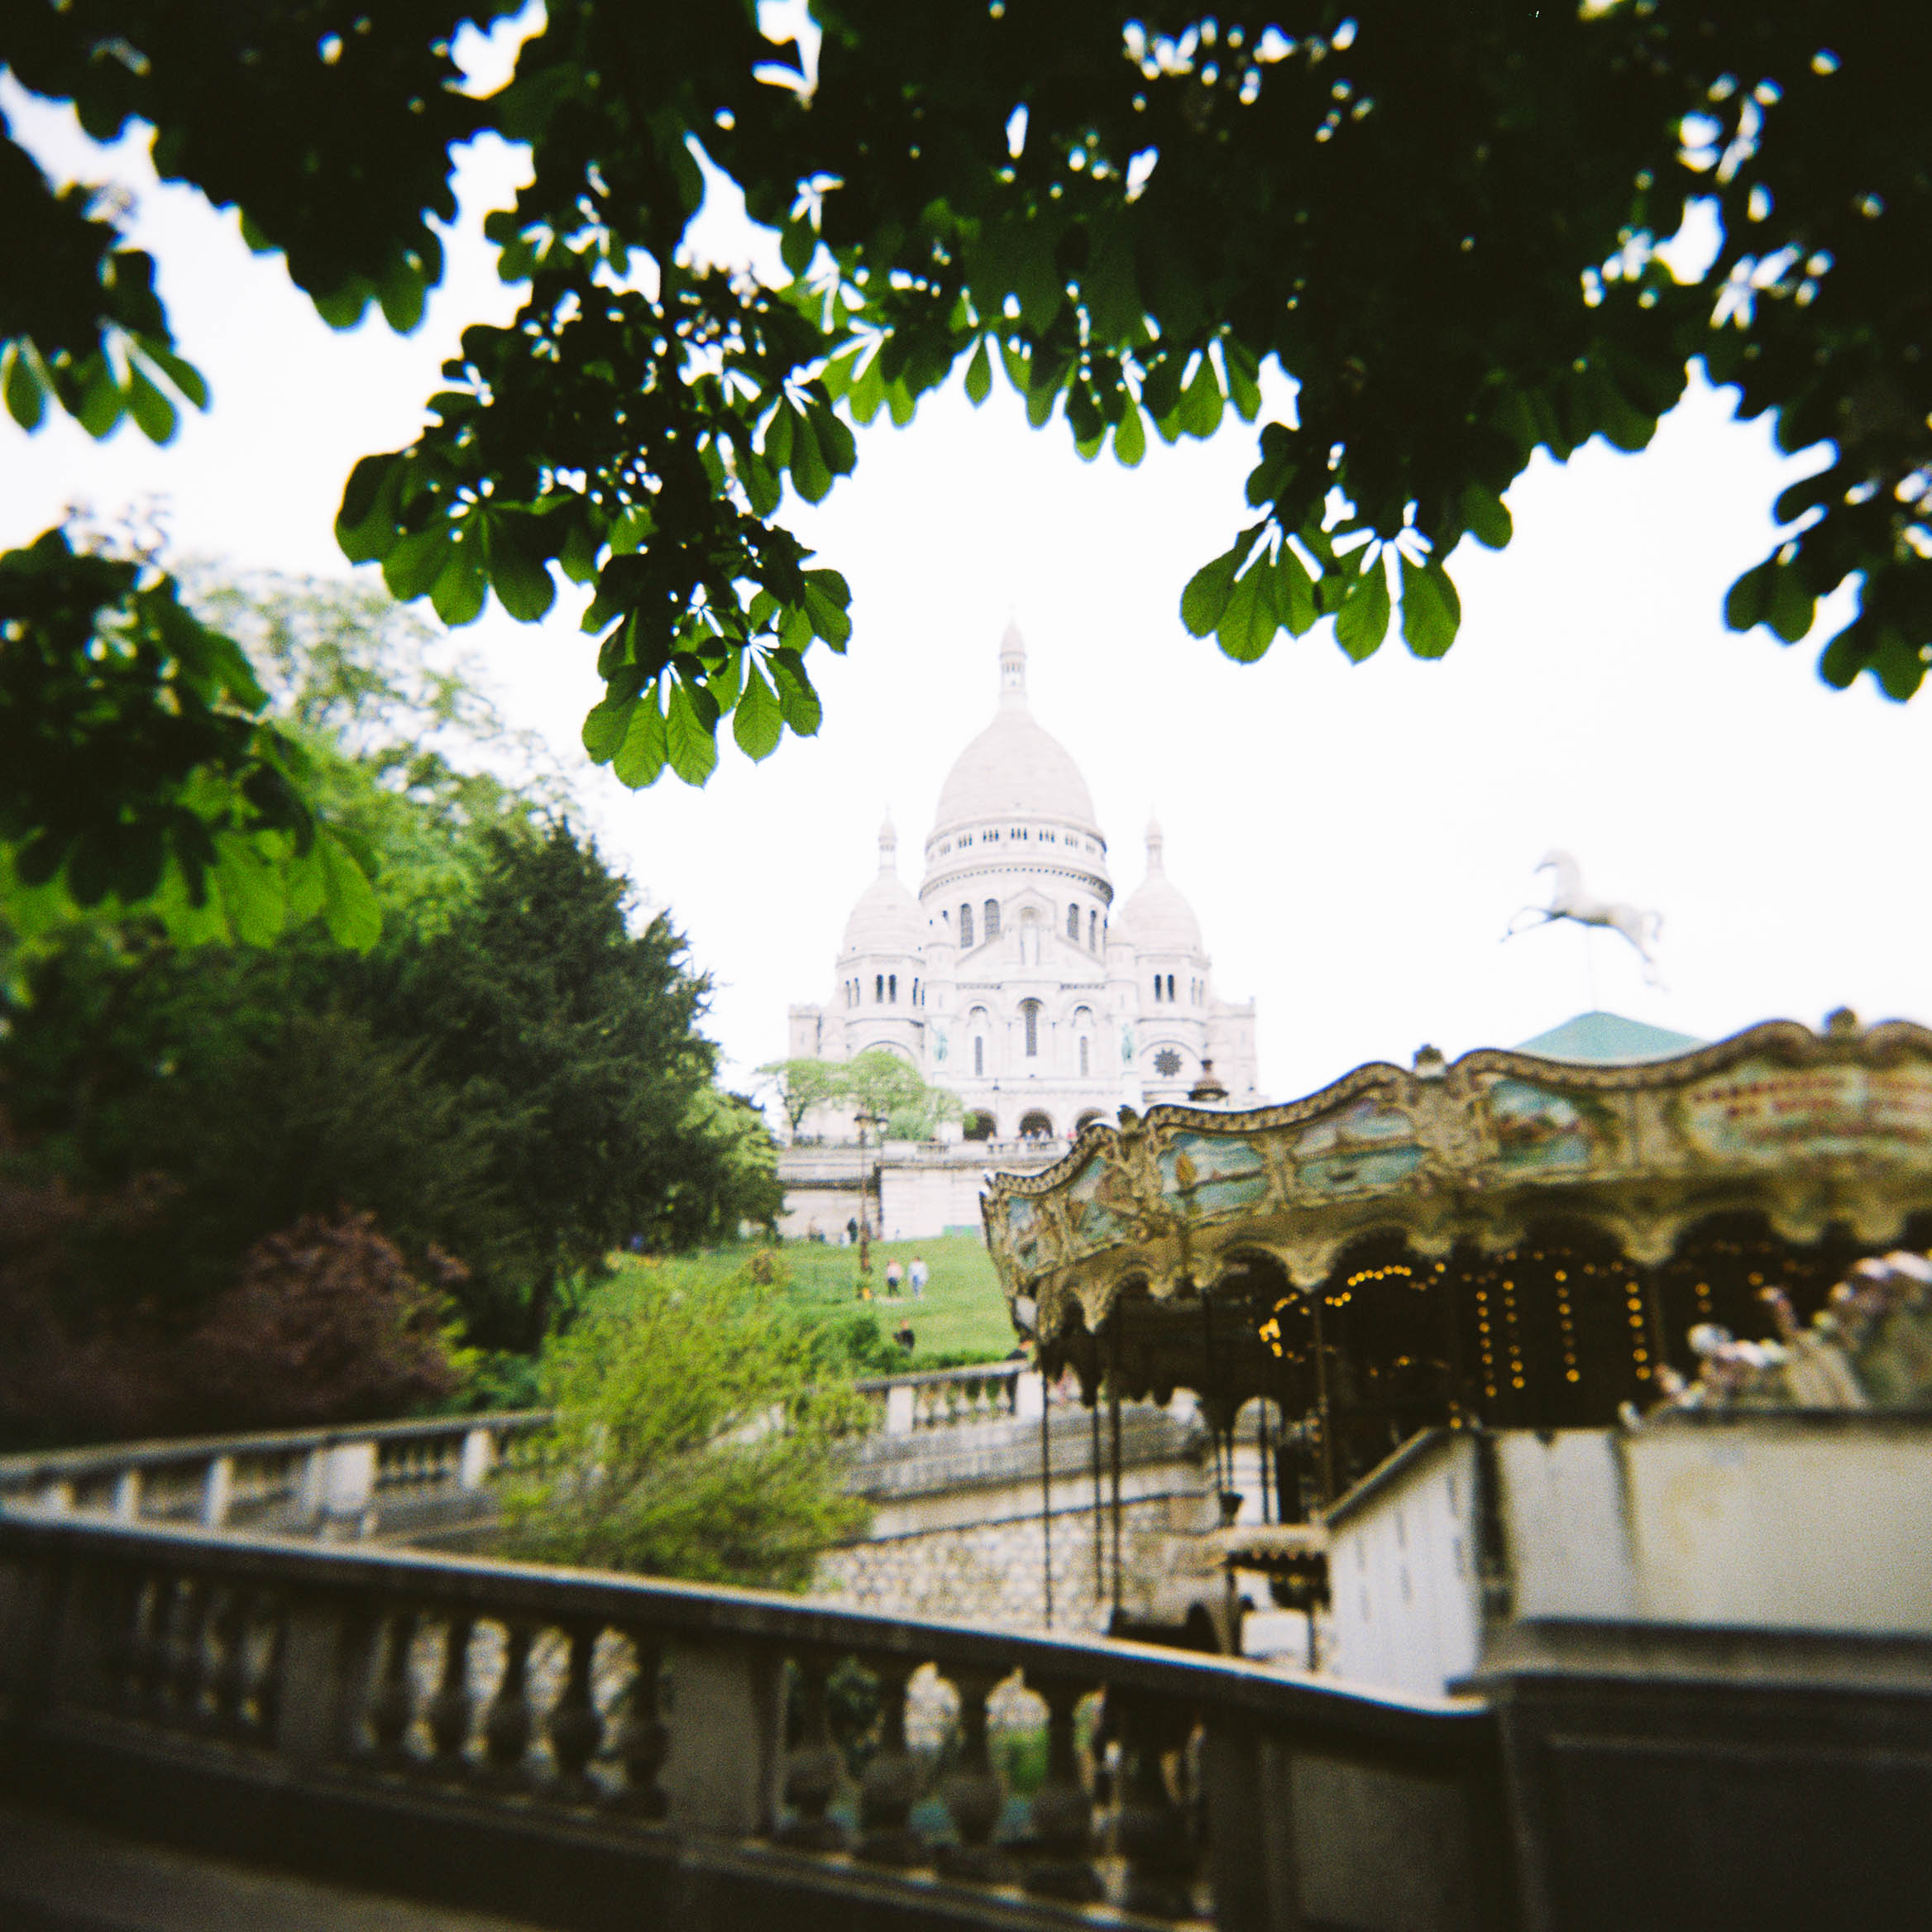 The Sacred Heart Basilica.  We had climbed to the top of the tower to get the above shot of the Eiffel Tower.